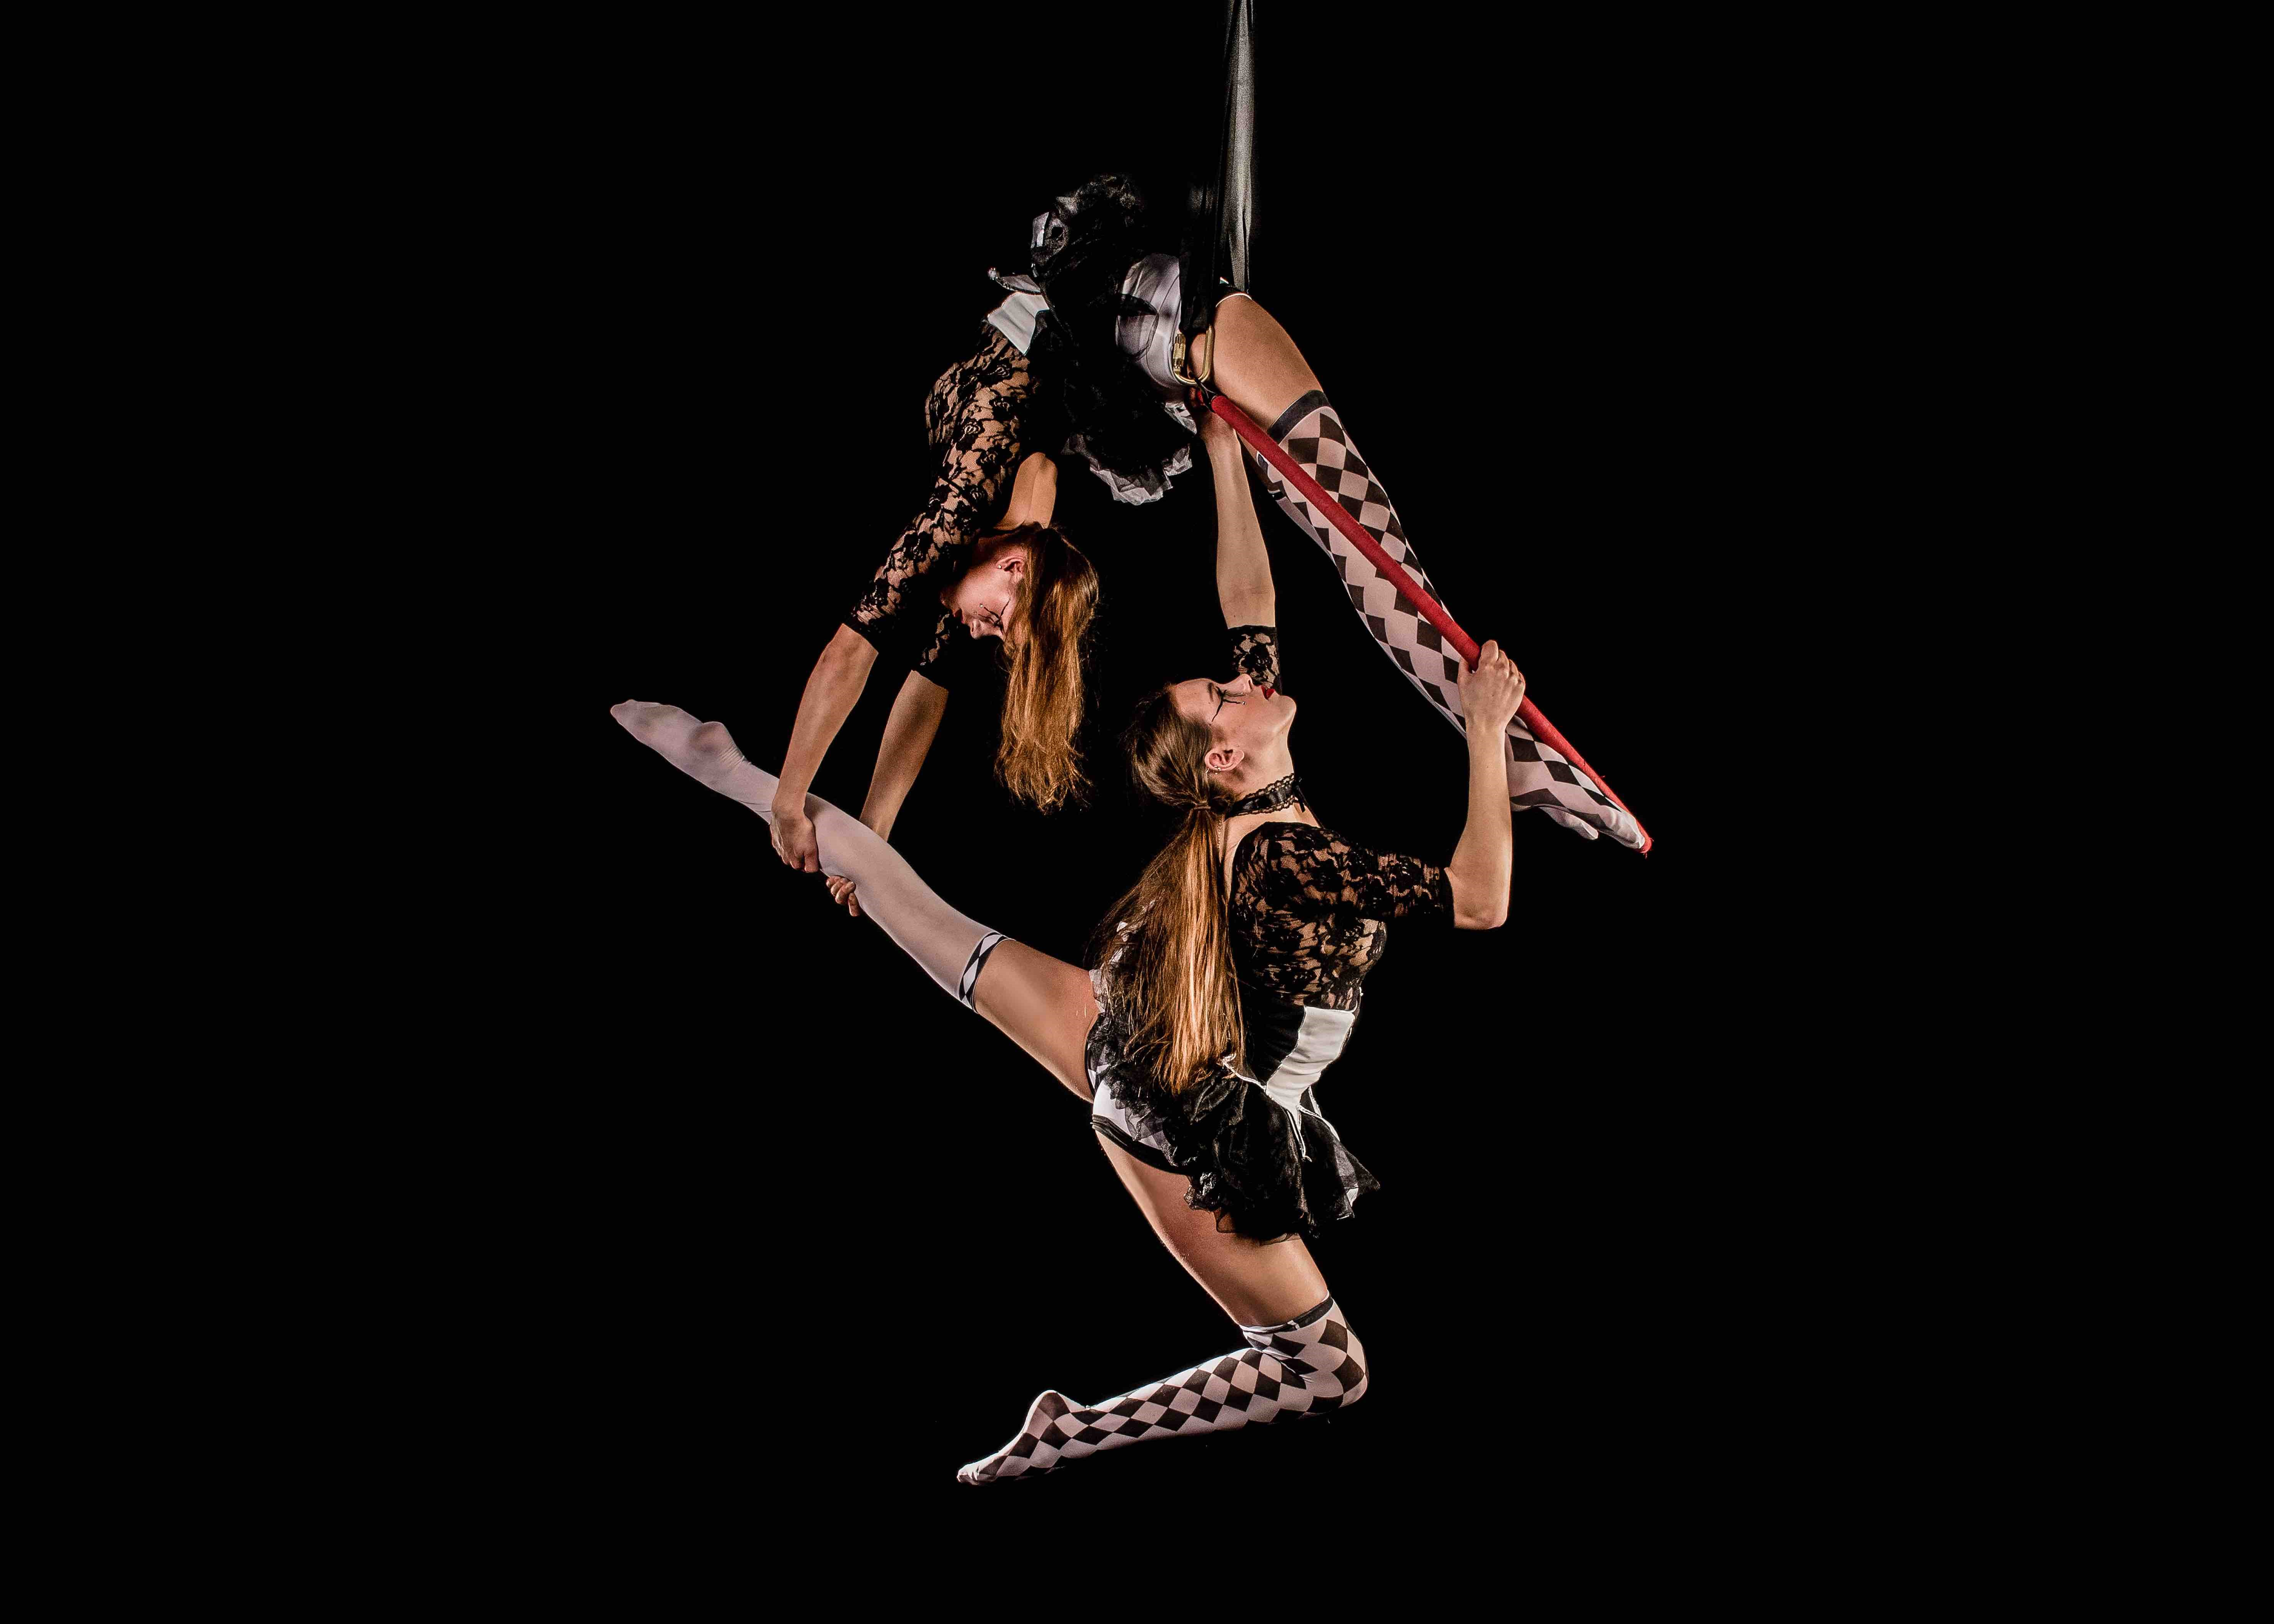 Circus performers for events